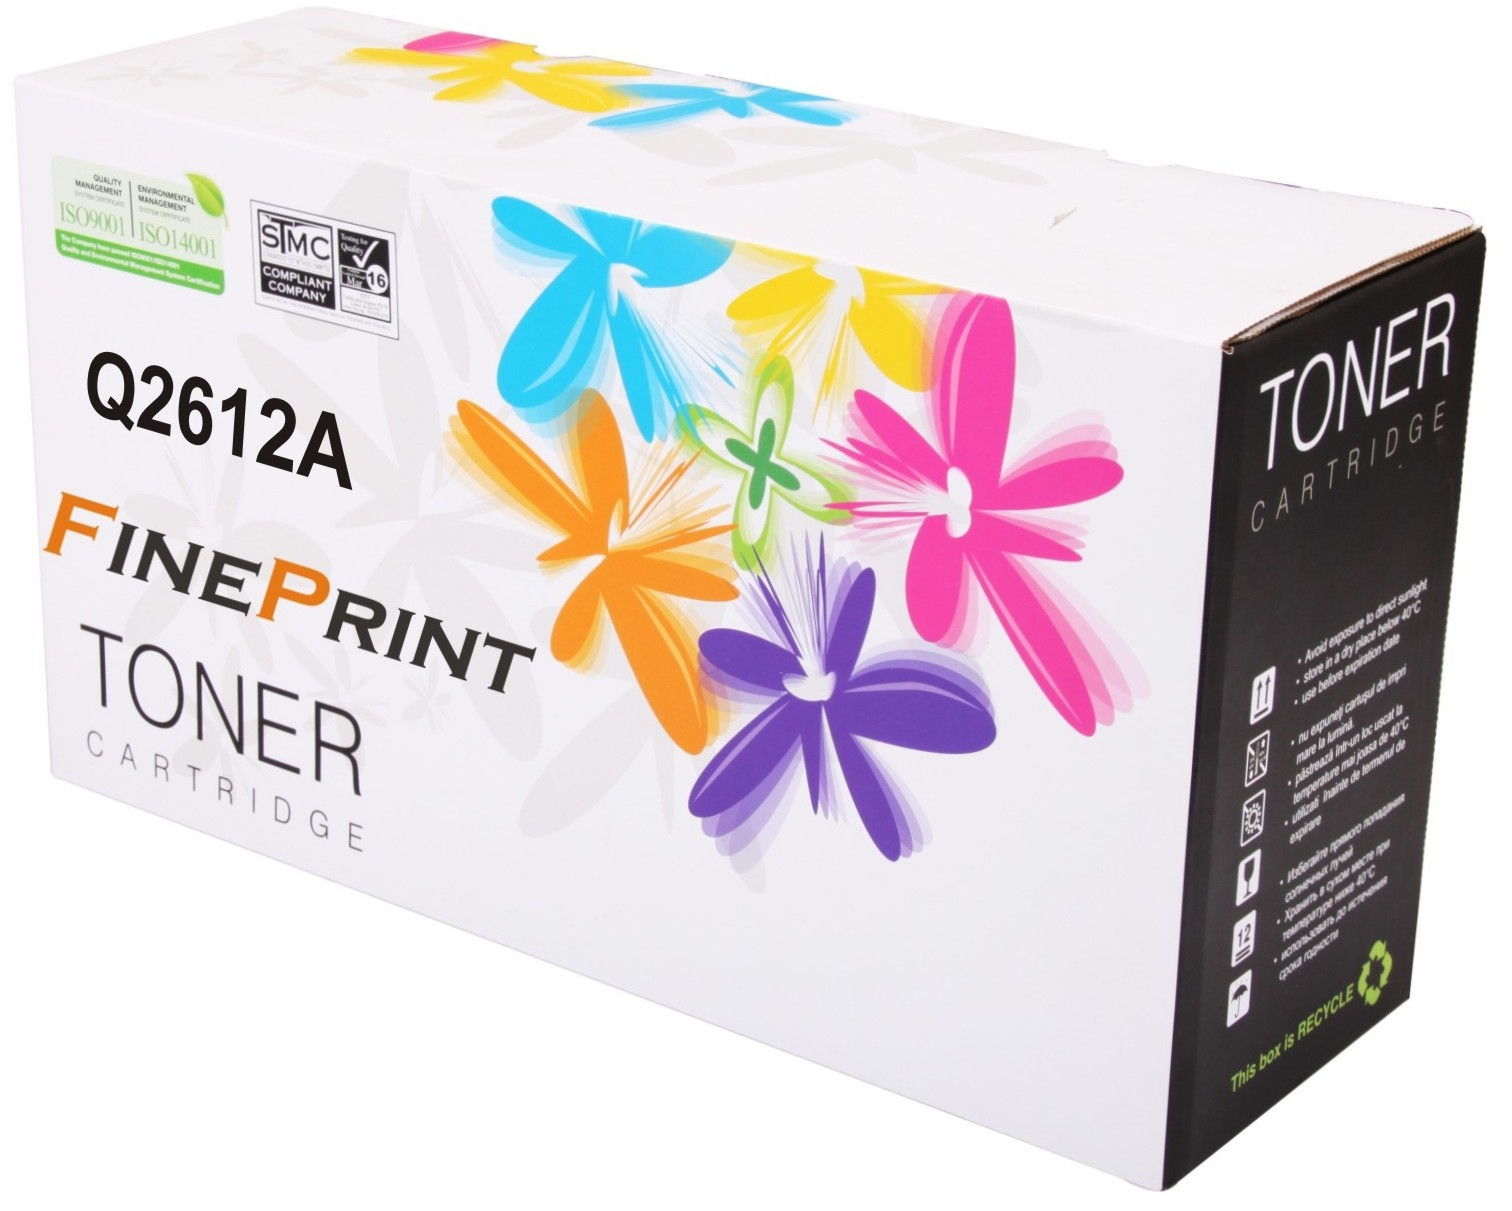 Fine Print 12A/Q2612A Toner Cartridge for Hp Printer 1010/1012/1015/1018/1020/3015/3020/3030/3050/3052/3055/1005mfp/1319f